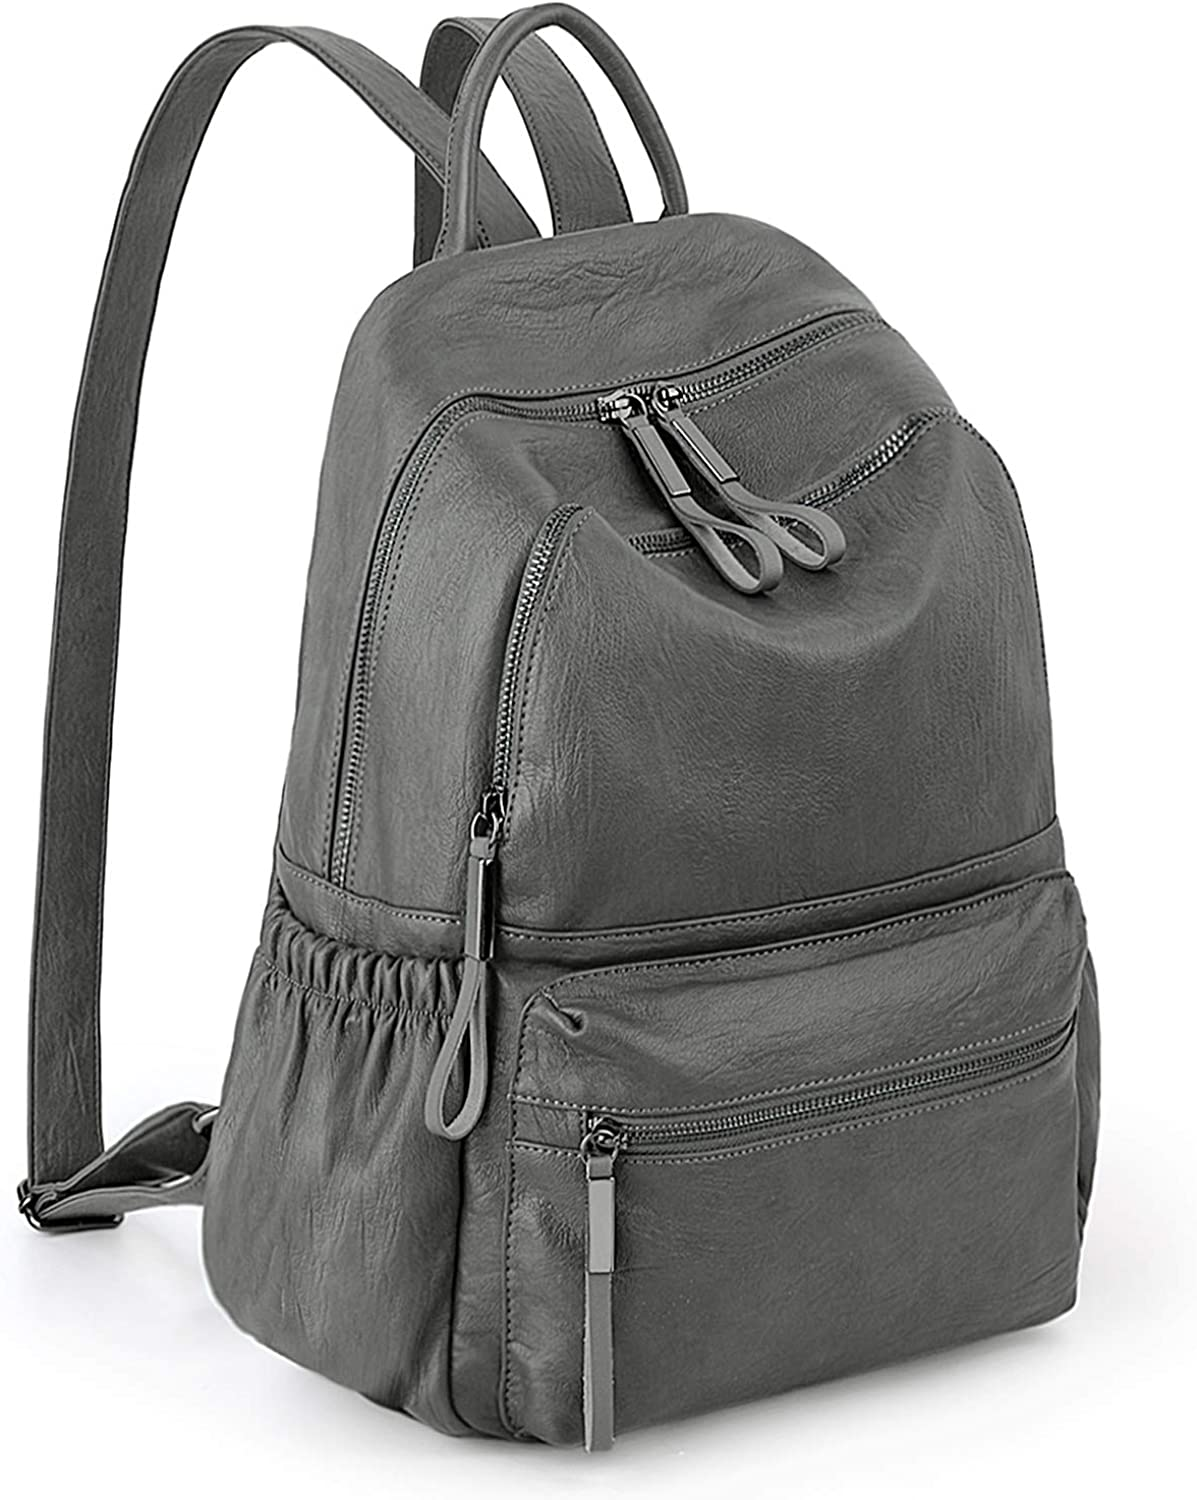 Backpack Purse for Women PU Leather Bagpacks Ladies Purse Waterp